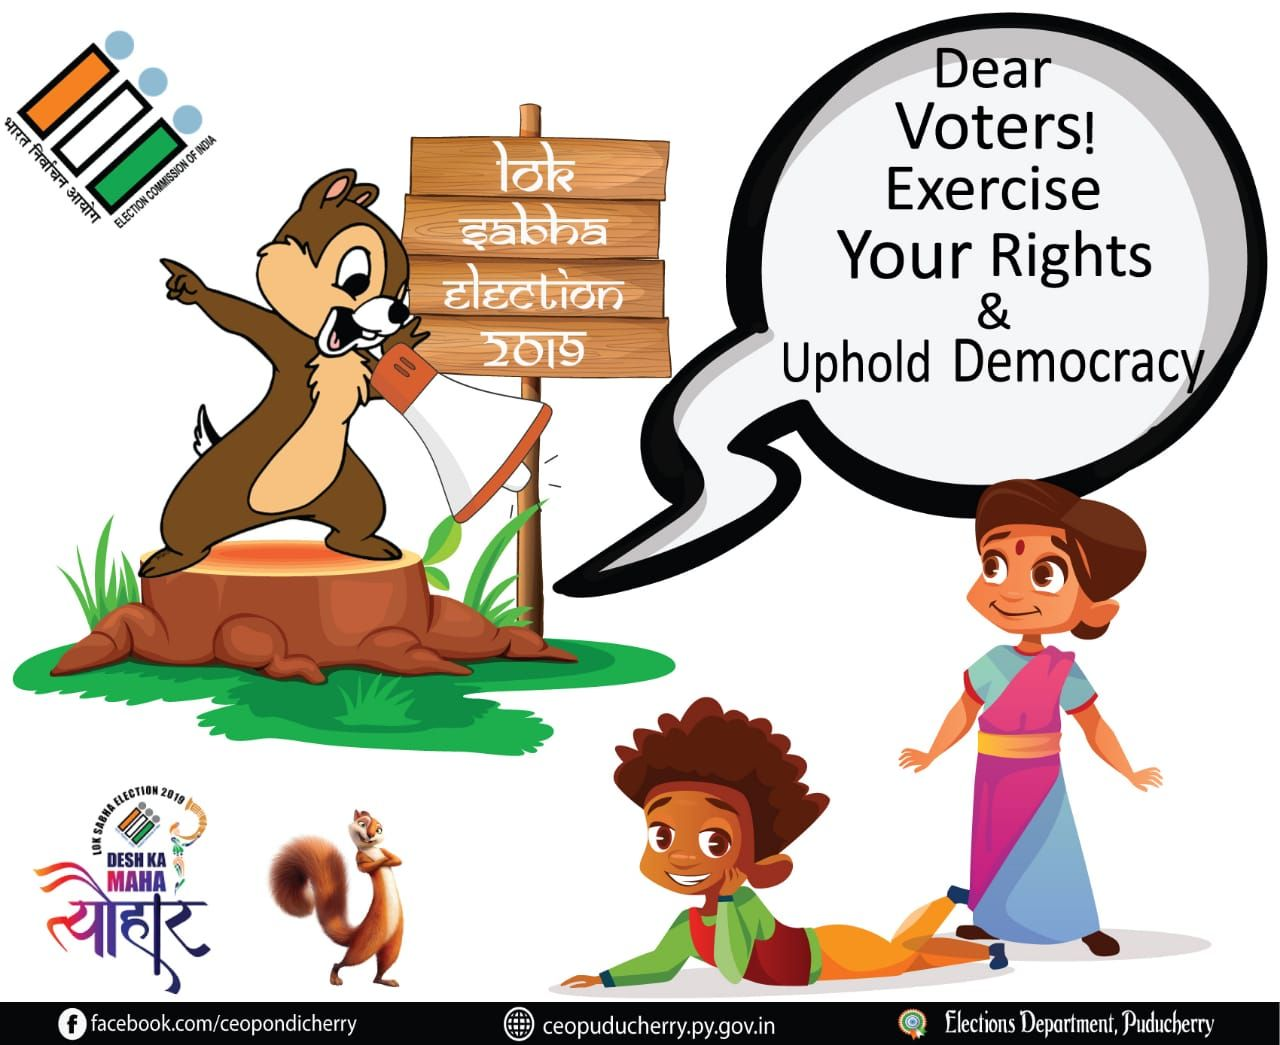 Dear Voters Exercise Your Rights & Uphold Democracy